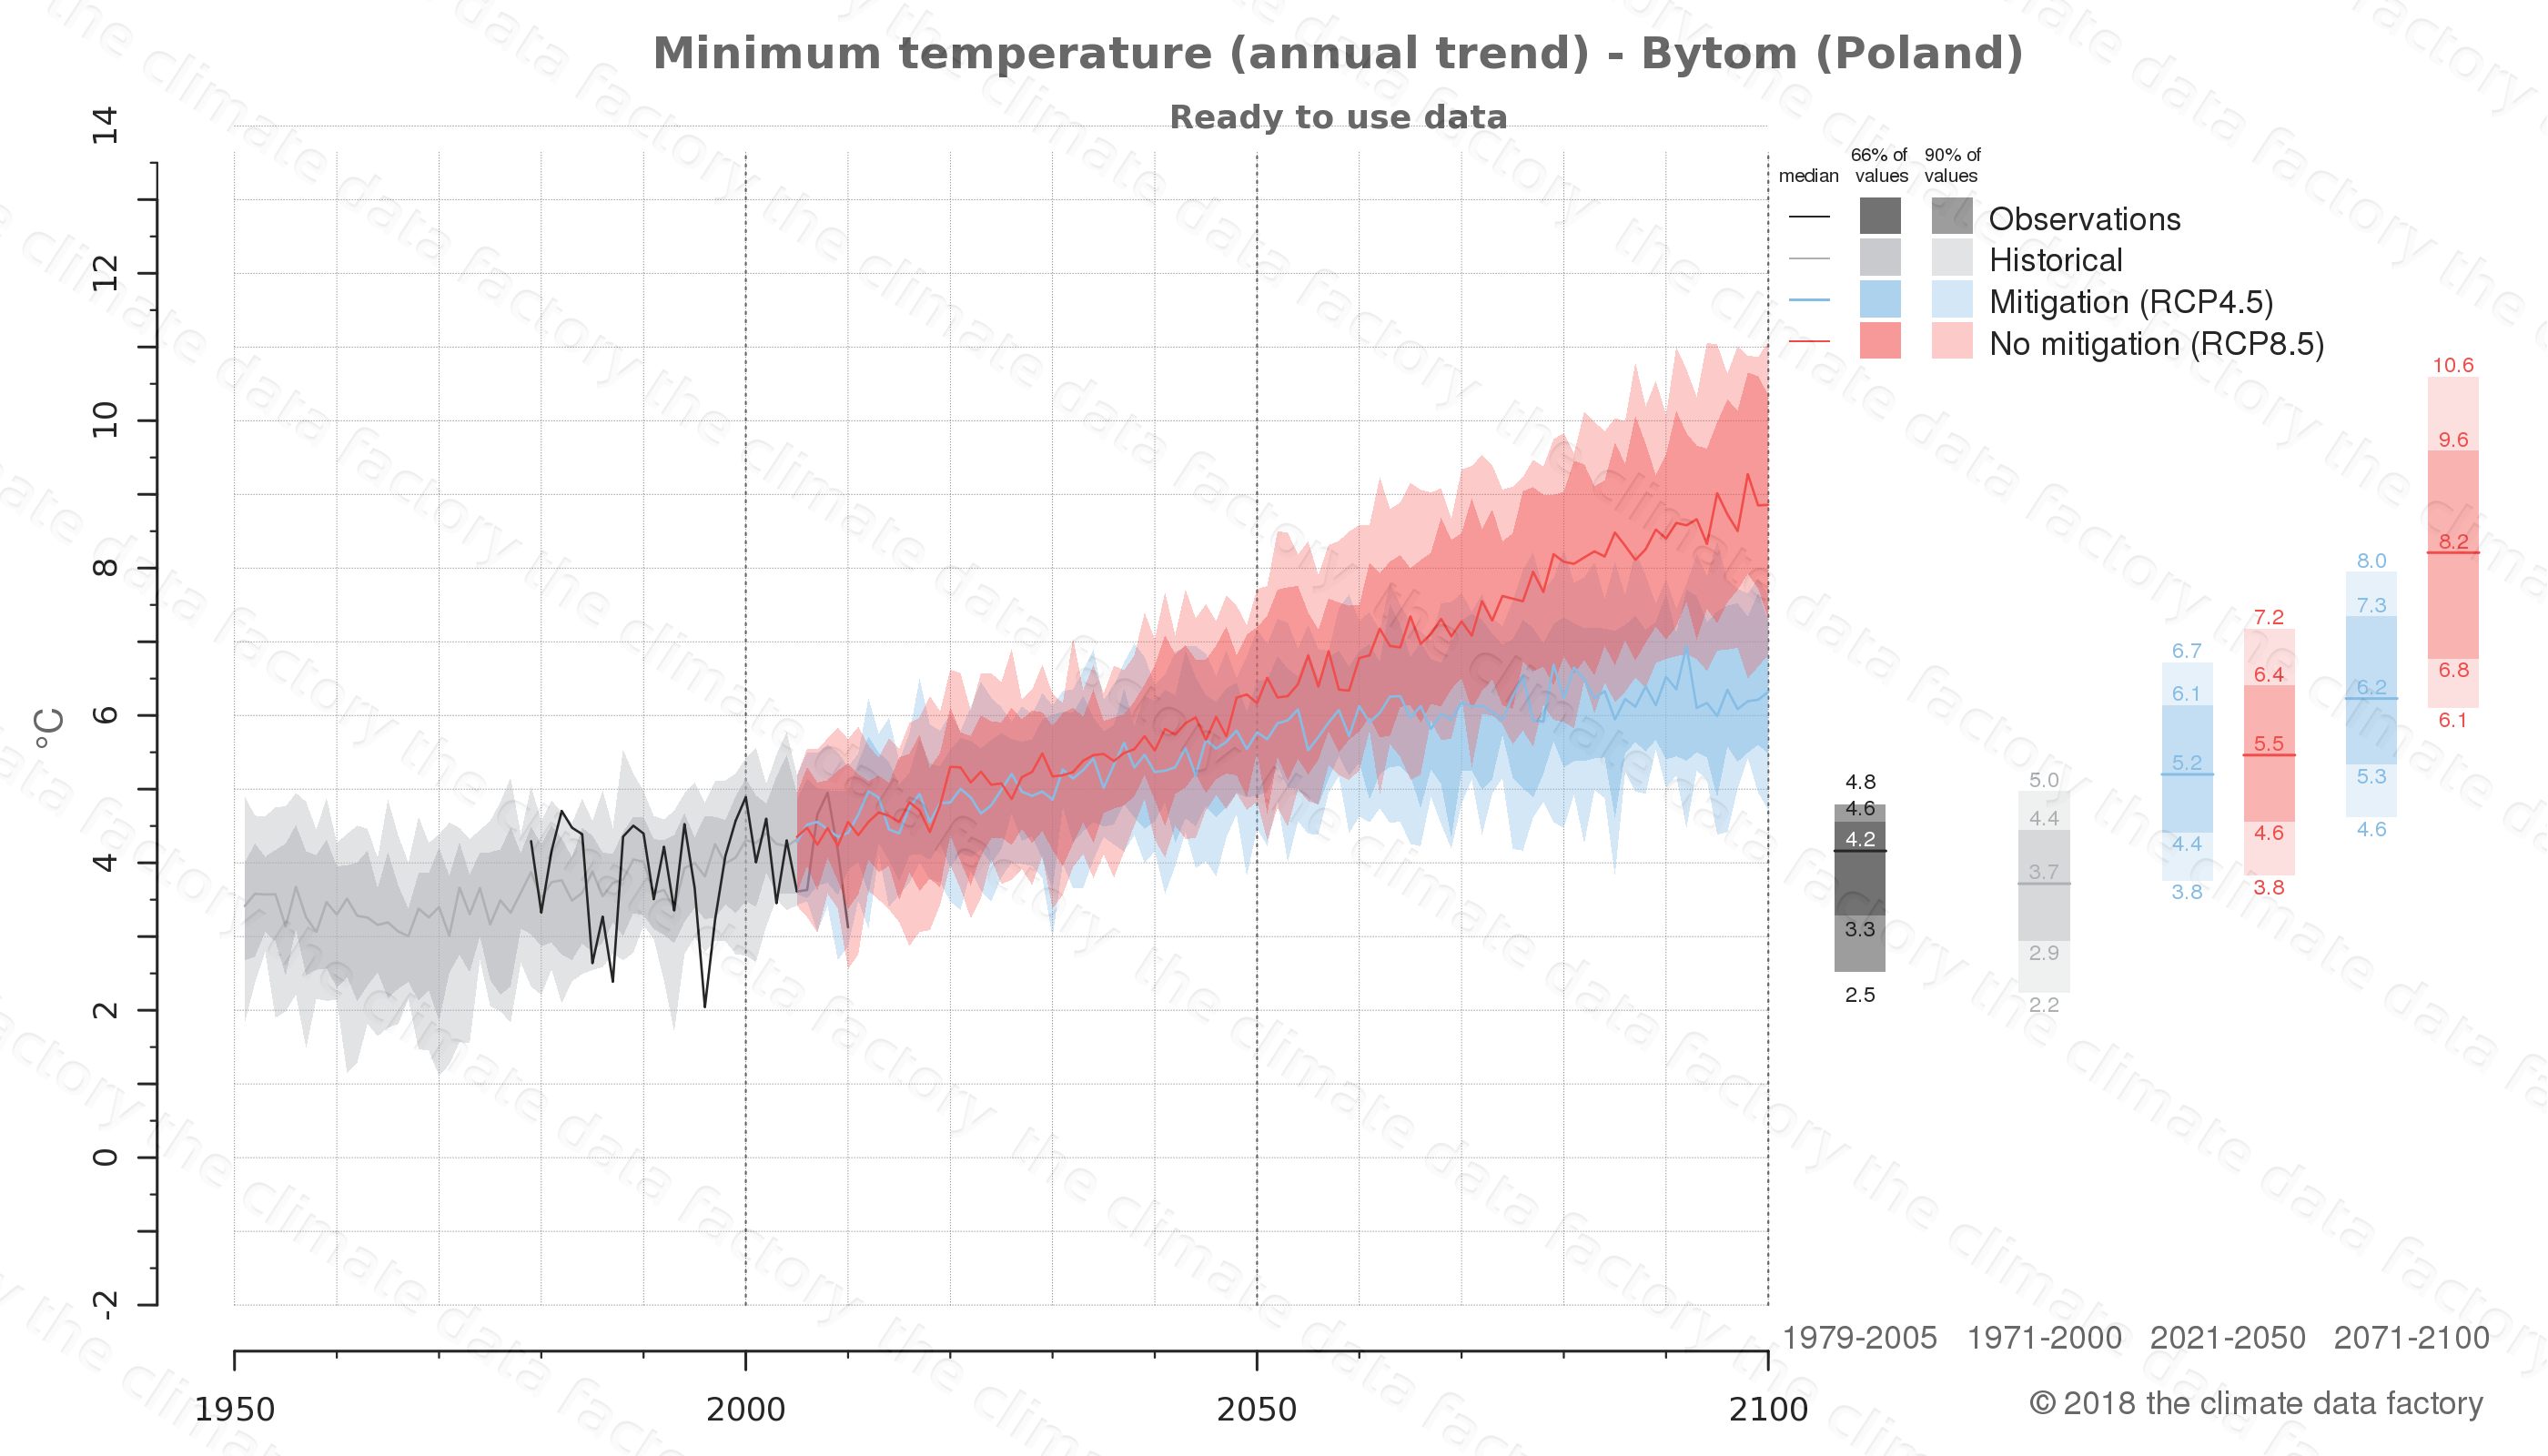 climate change data policy adaptation climate graph city data minimum-temperature bytom poland